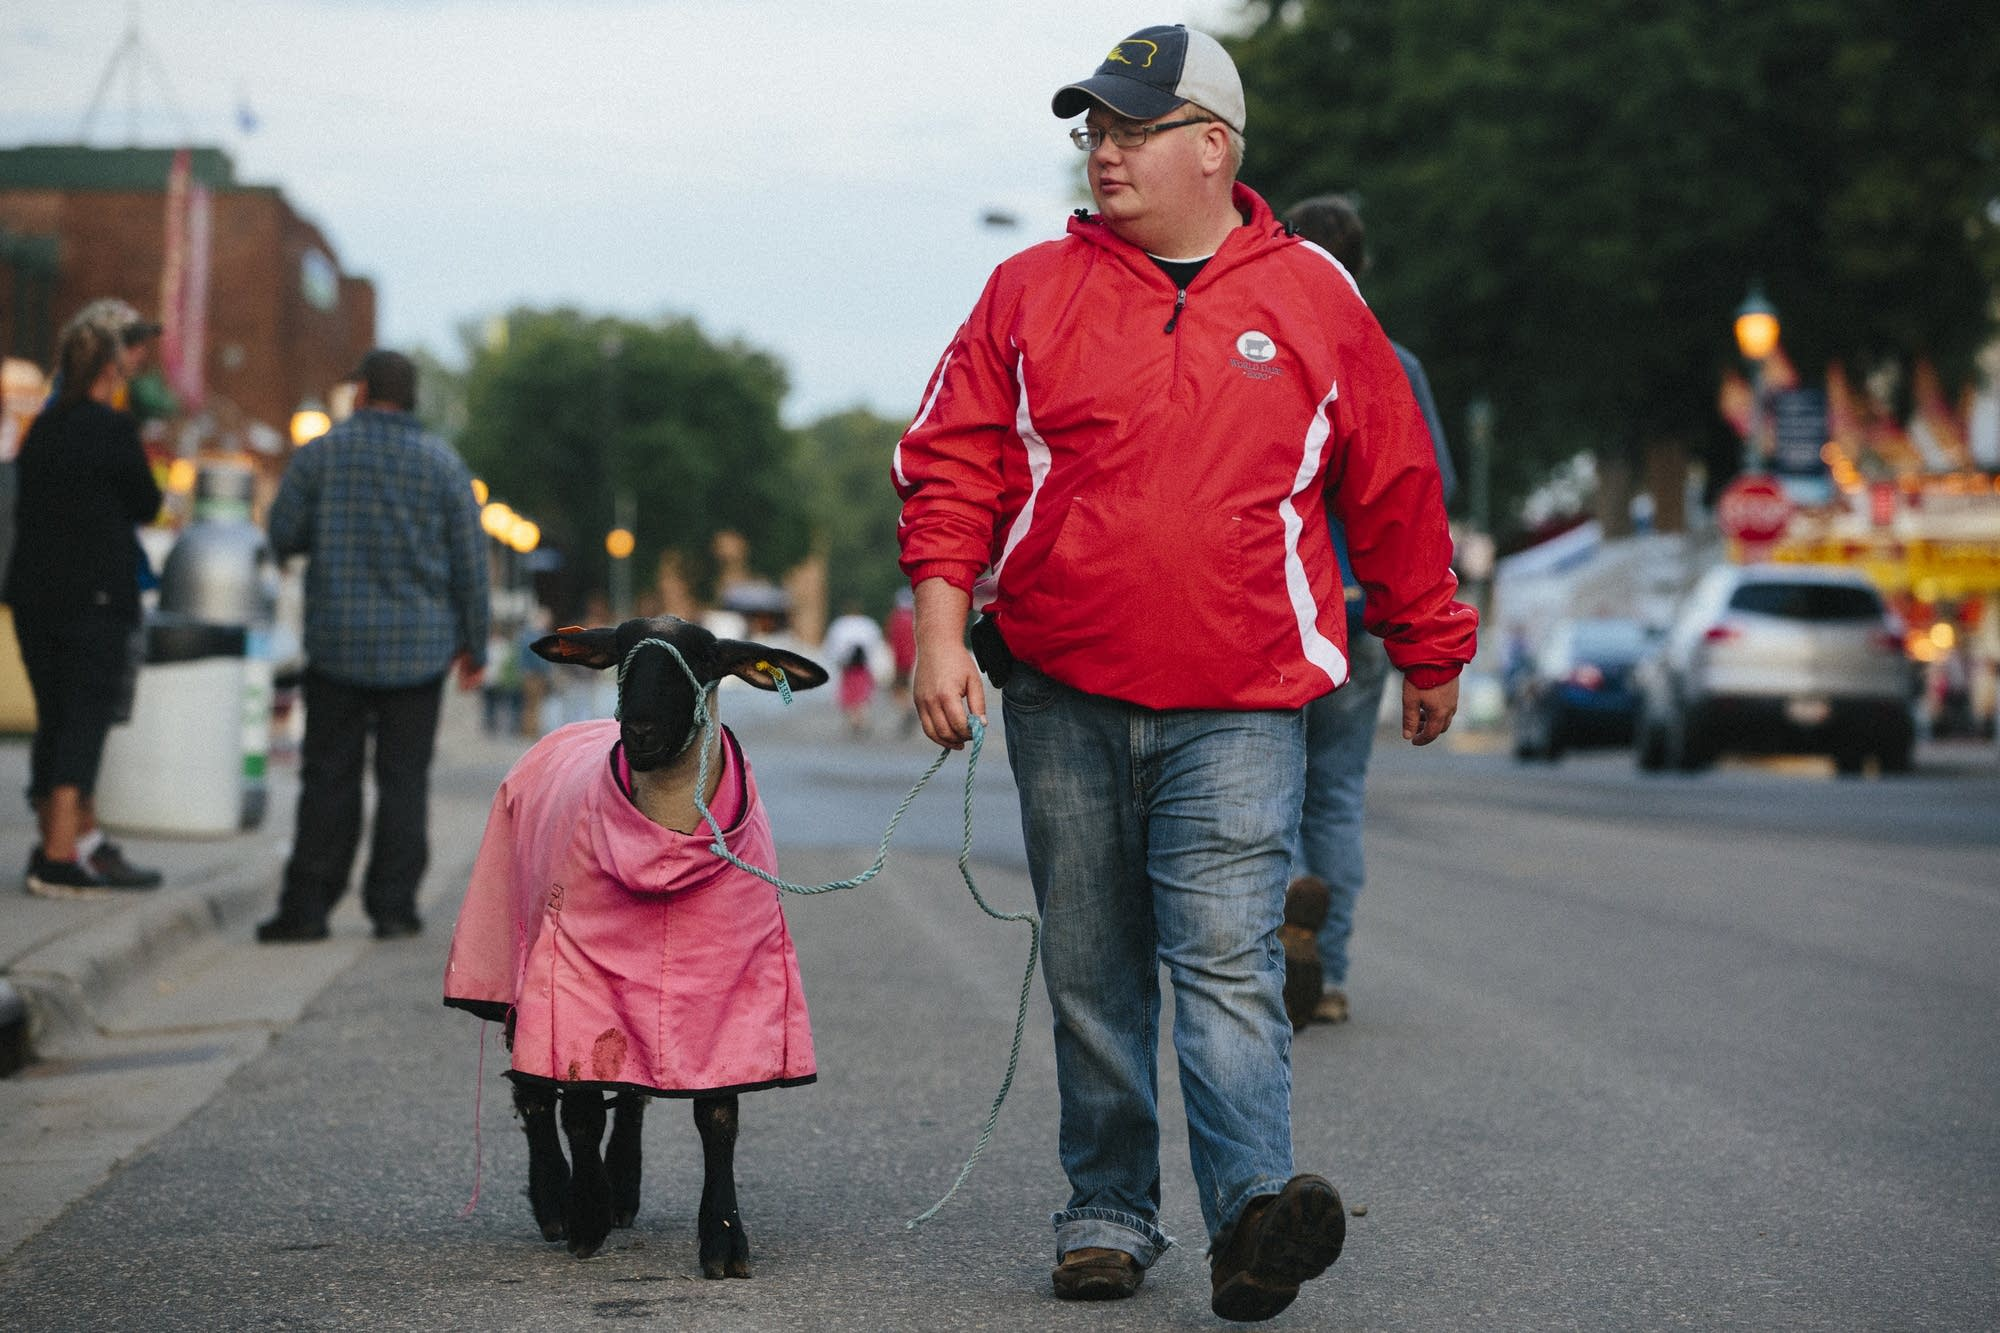 Derek Stehr takes one of his sheep for a walk.